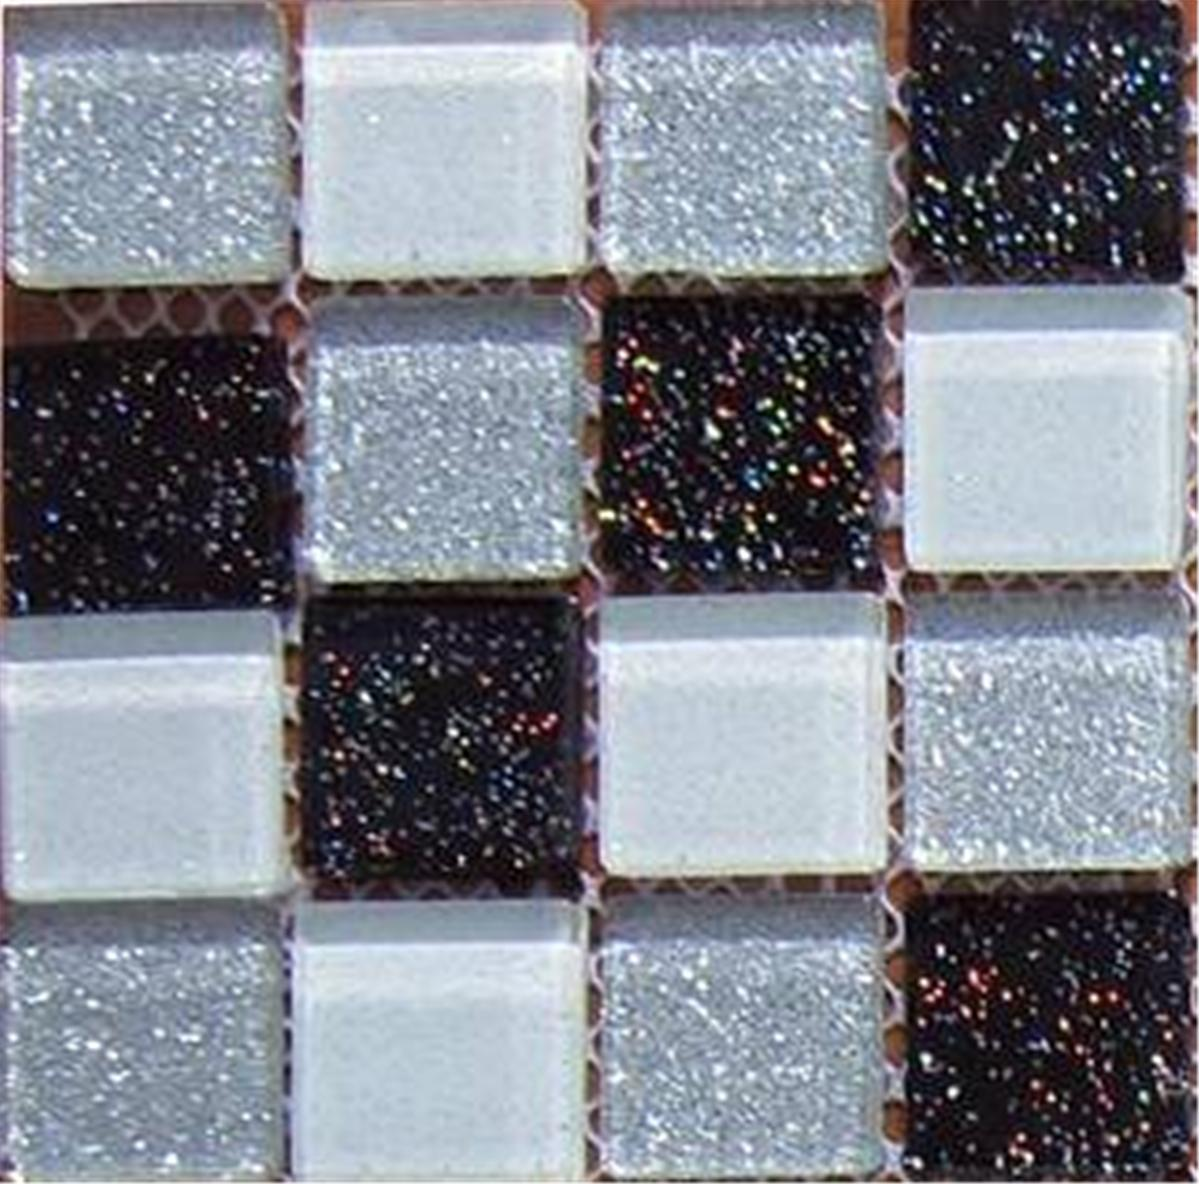 Glitter Kitchen Floor Tiles: Black Silver White Glitter Glass Kitchen Bathroom Mosaic